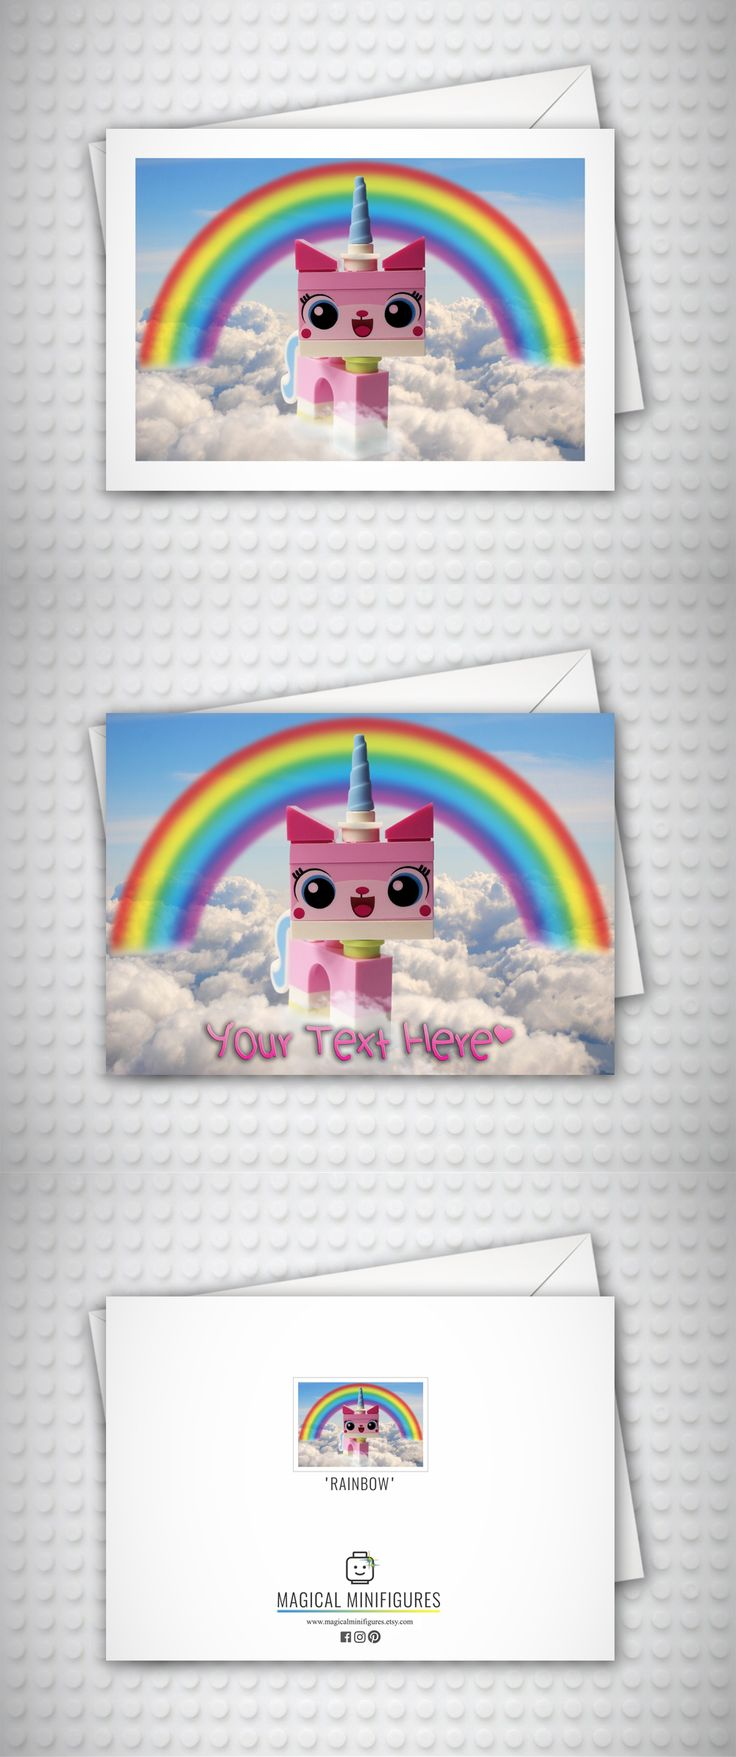 UniKitty - The Lego Movie - Birthday Card - Thank You Card - Lego Minifigure - Cat - Personalised Card - Card for Her - Cat Lover - Cards for Girls - Lego Card - Rainbow - Unicorn